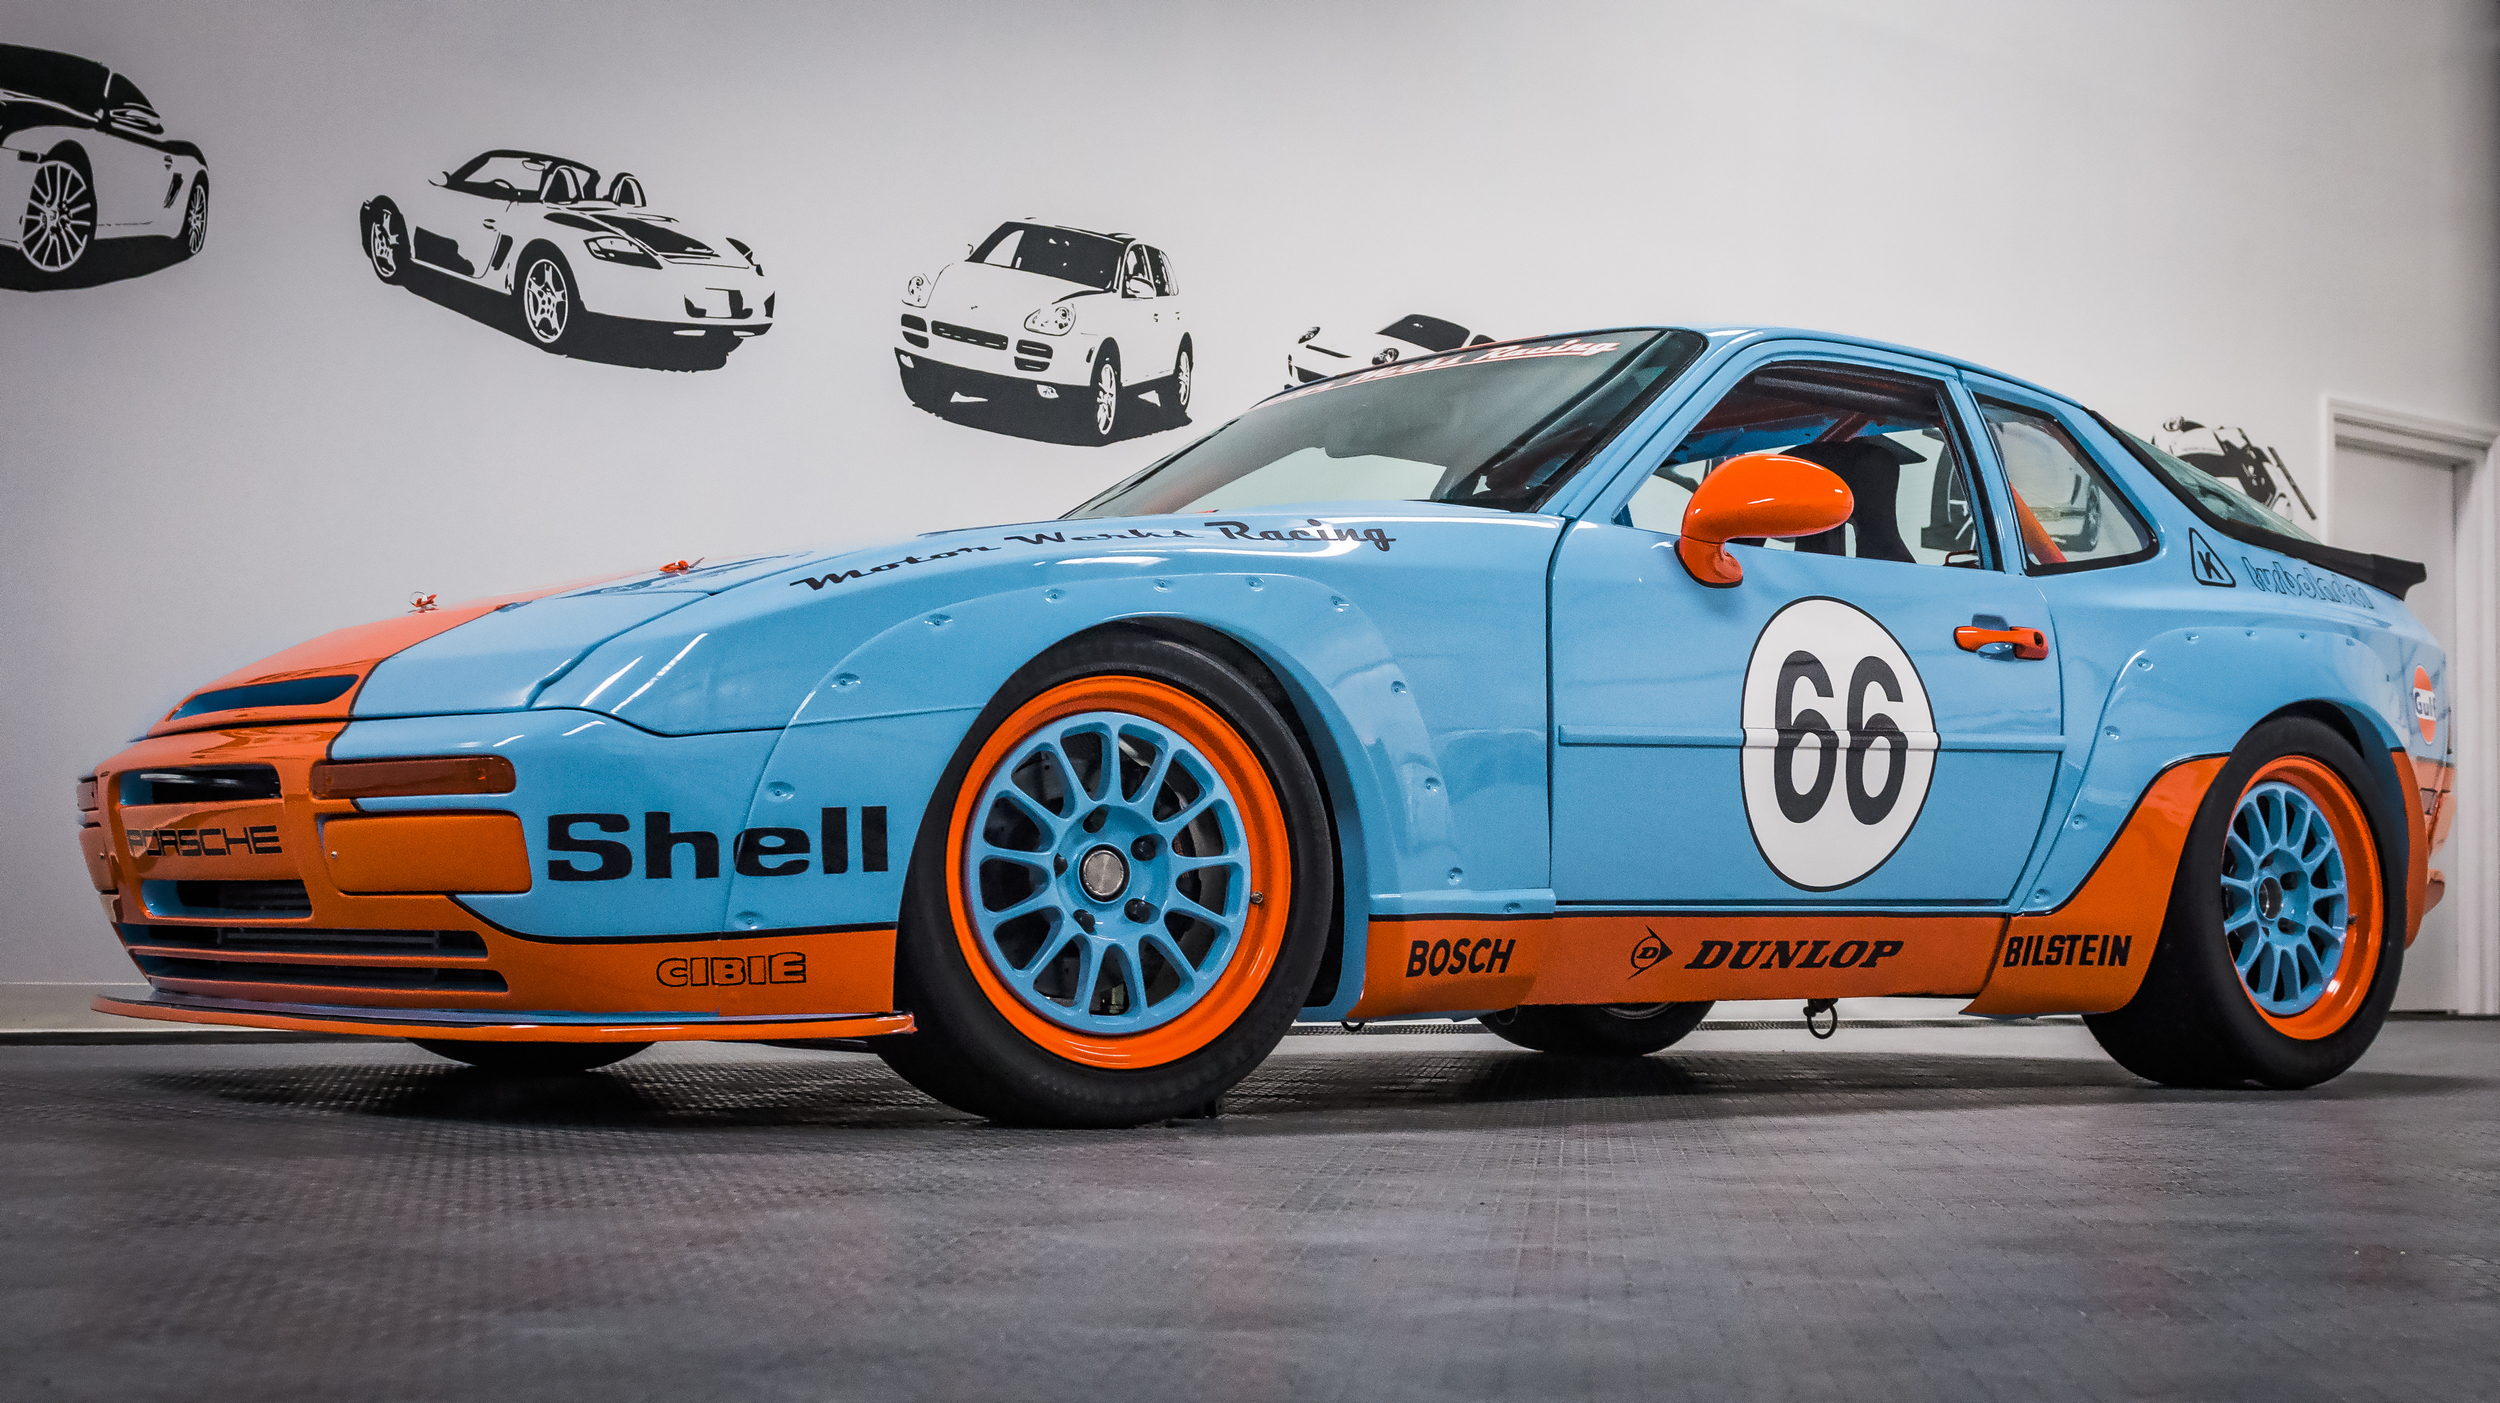 Porsche 944 Gulf Tribute with 1.8T Engine Conversion